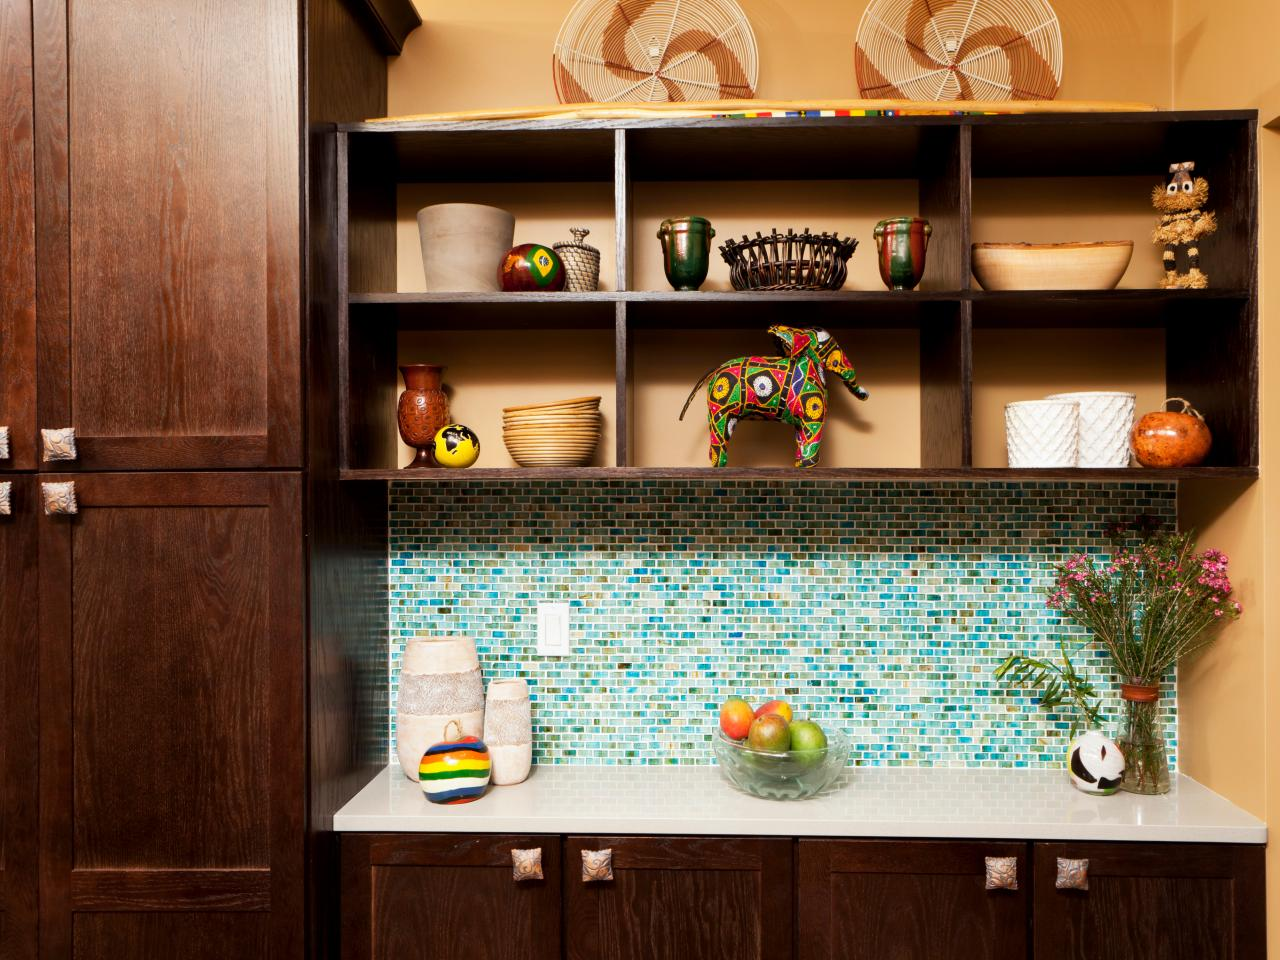 Glass Tile Backsplash Ideas: Pictures & Tips From HGTV